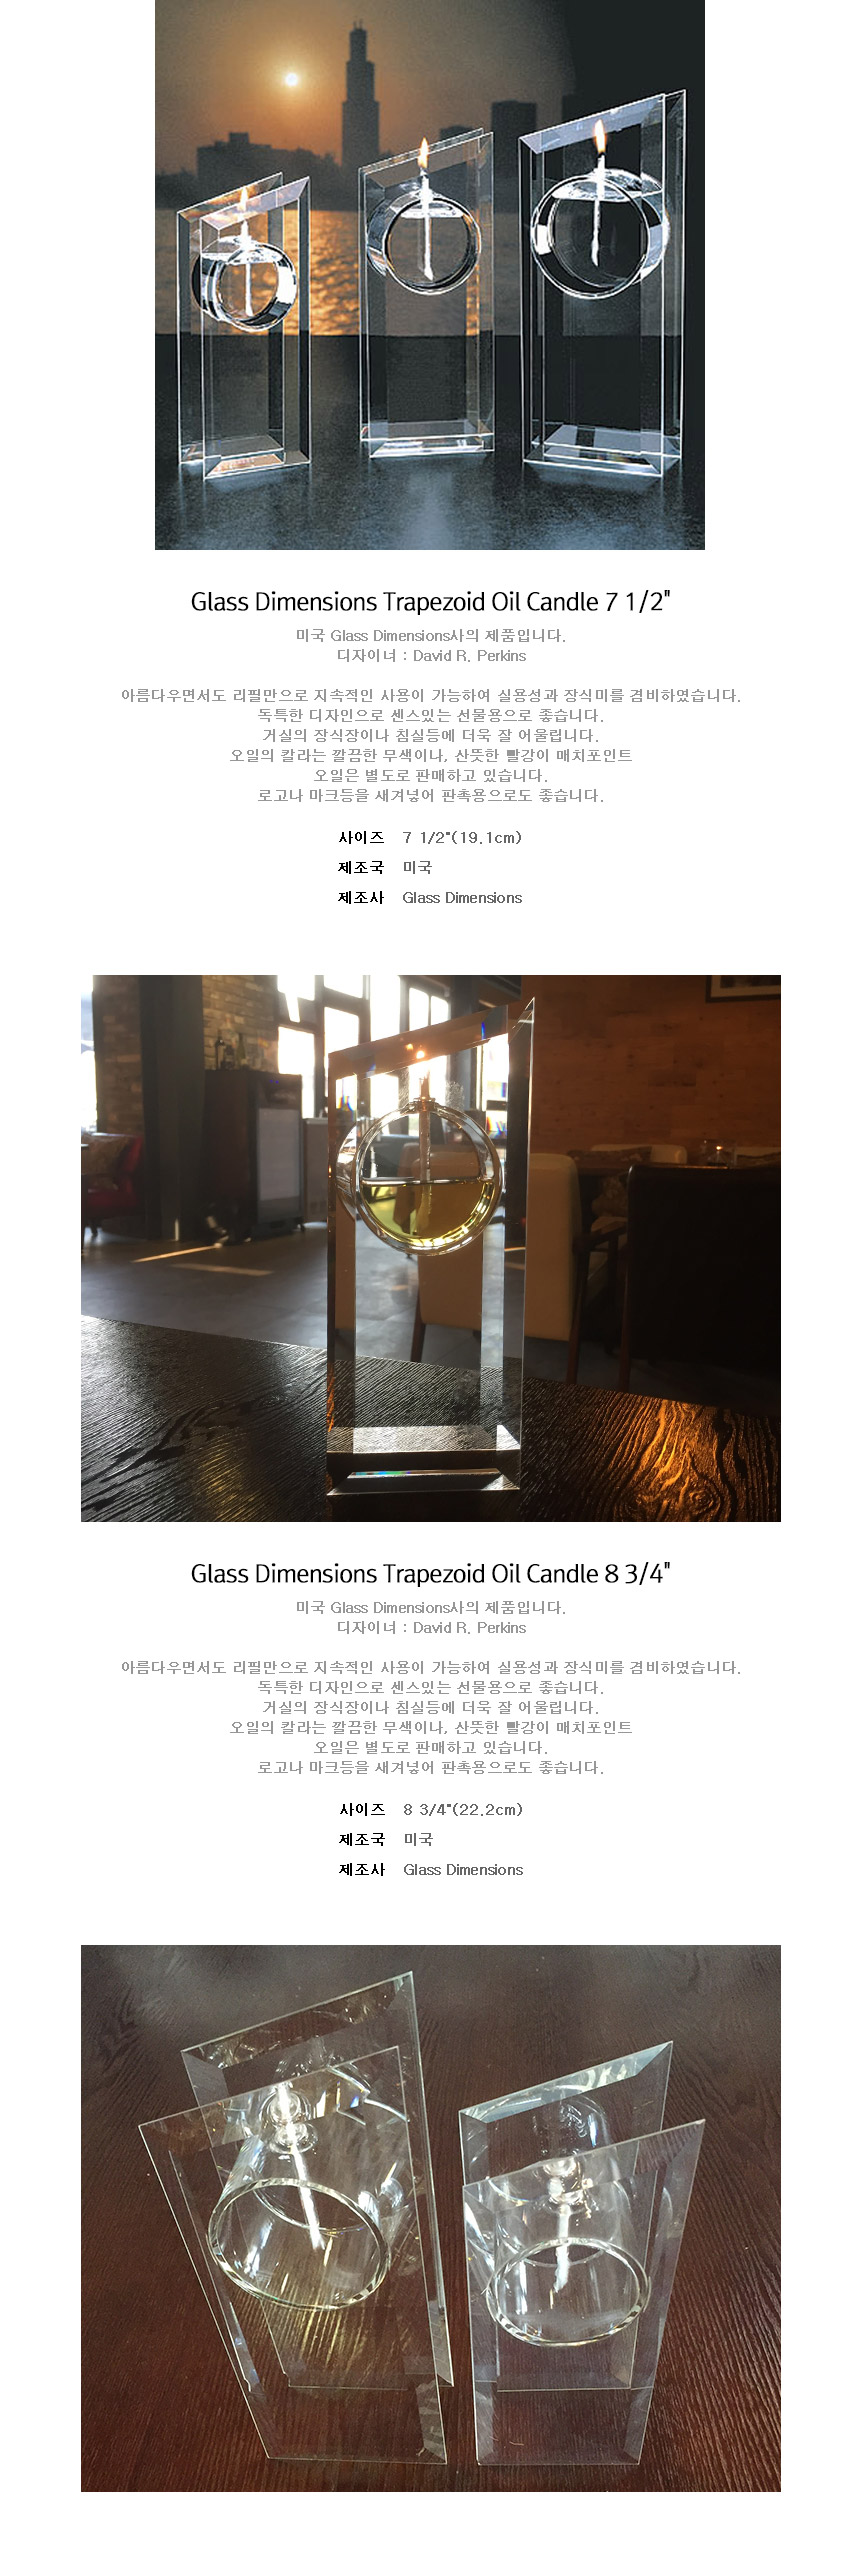 램프플러스 Glass Dimensions Trapezoid Oil Candle